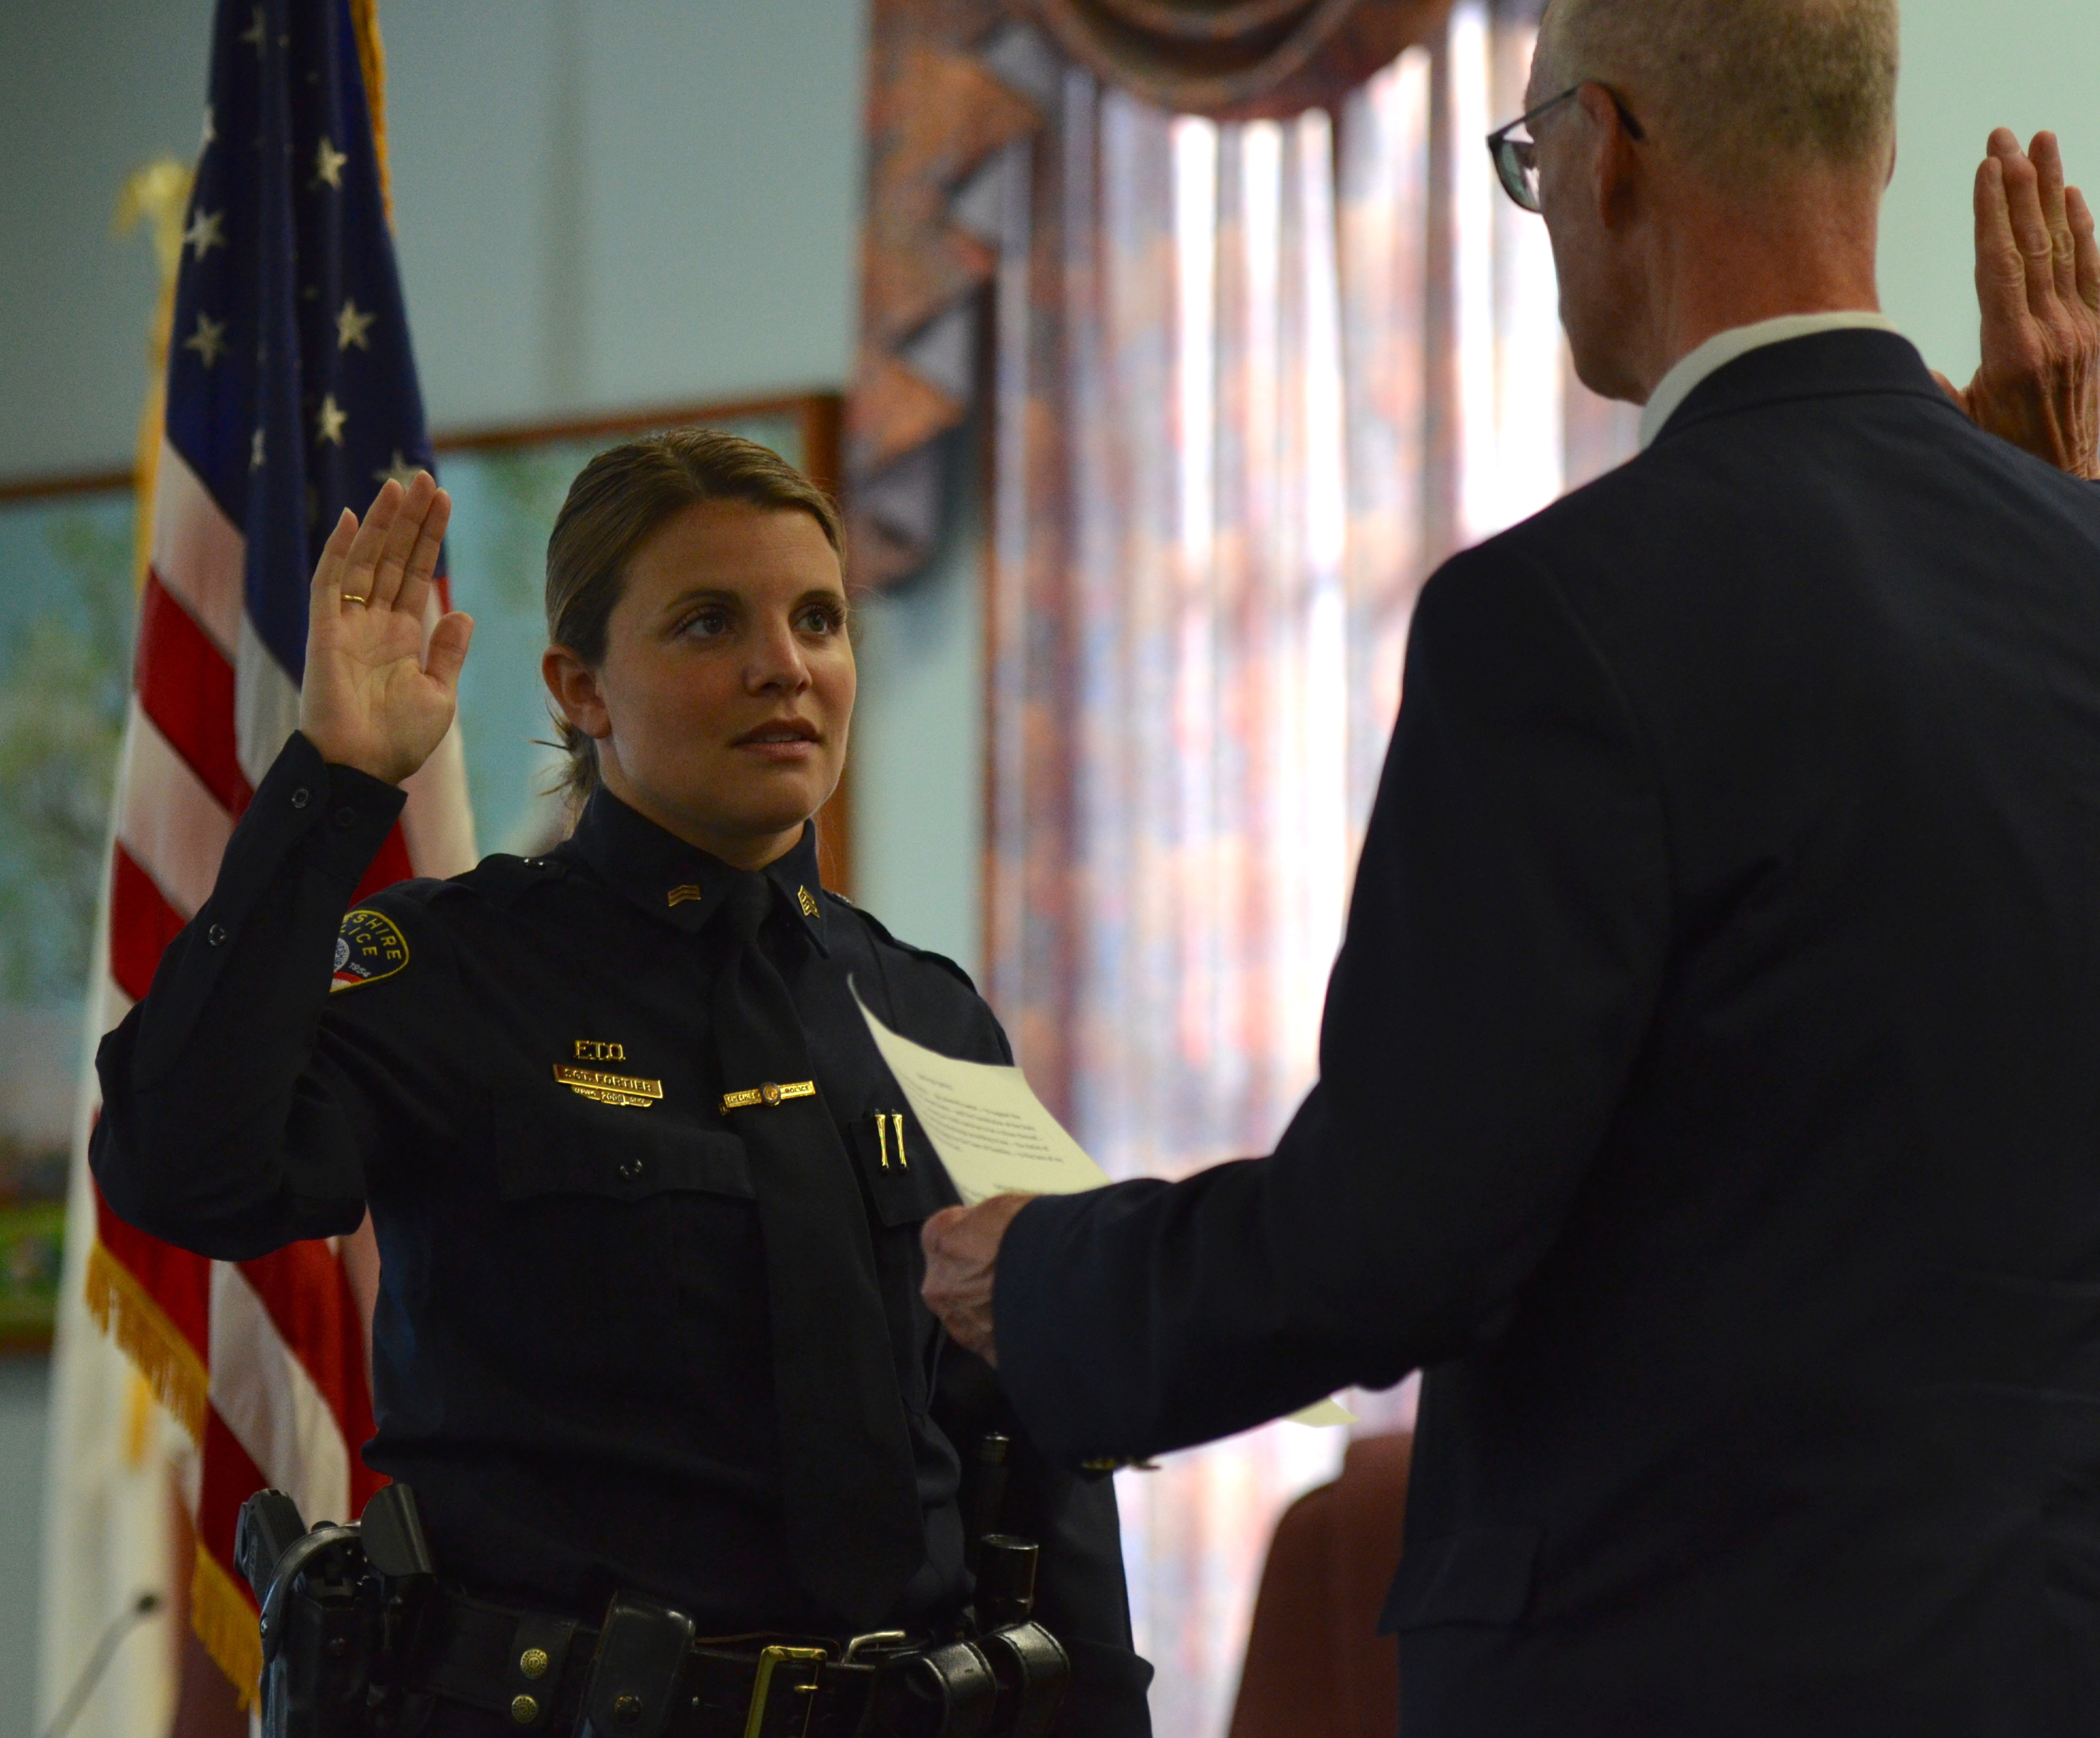 CHESHIRE — The police department promoted five officers ...